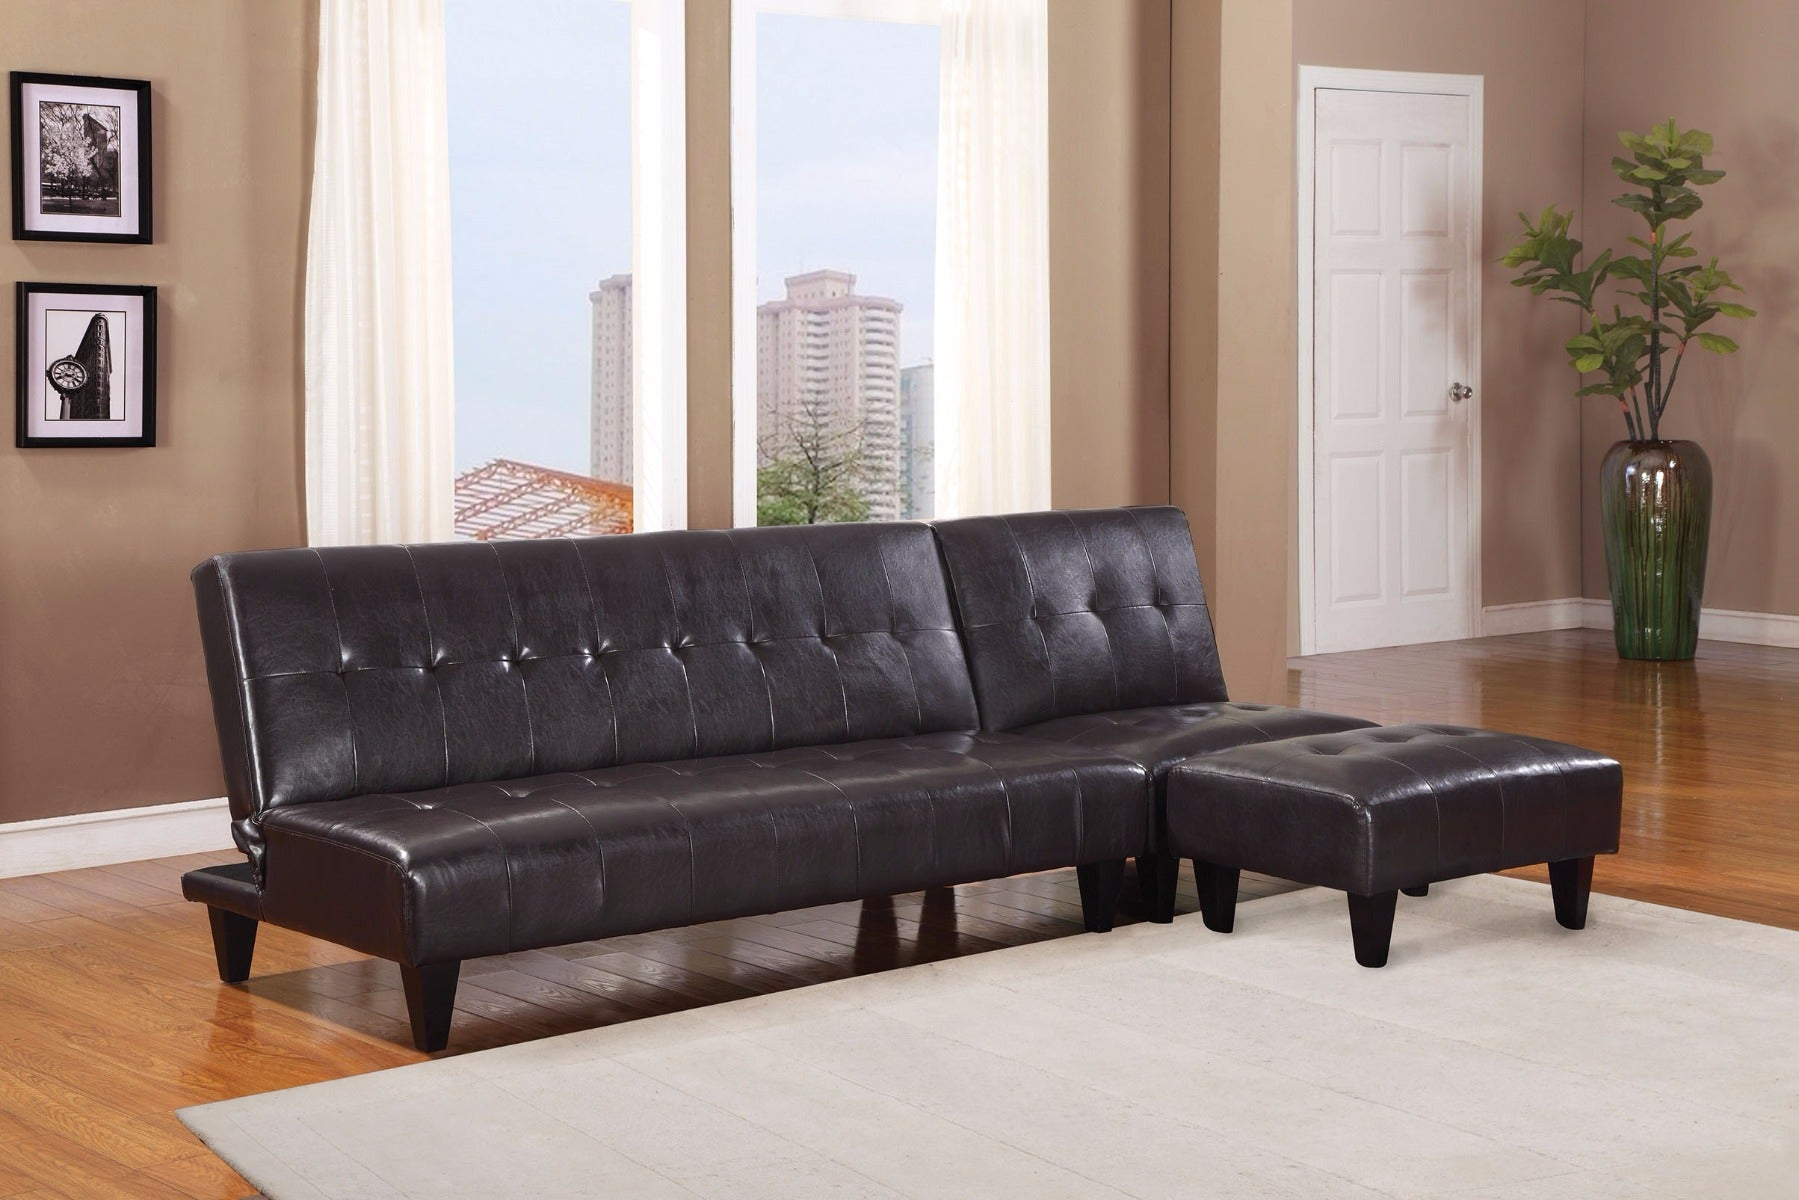 Conrad 3 Piece Sofa, Chair and Ottoman